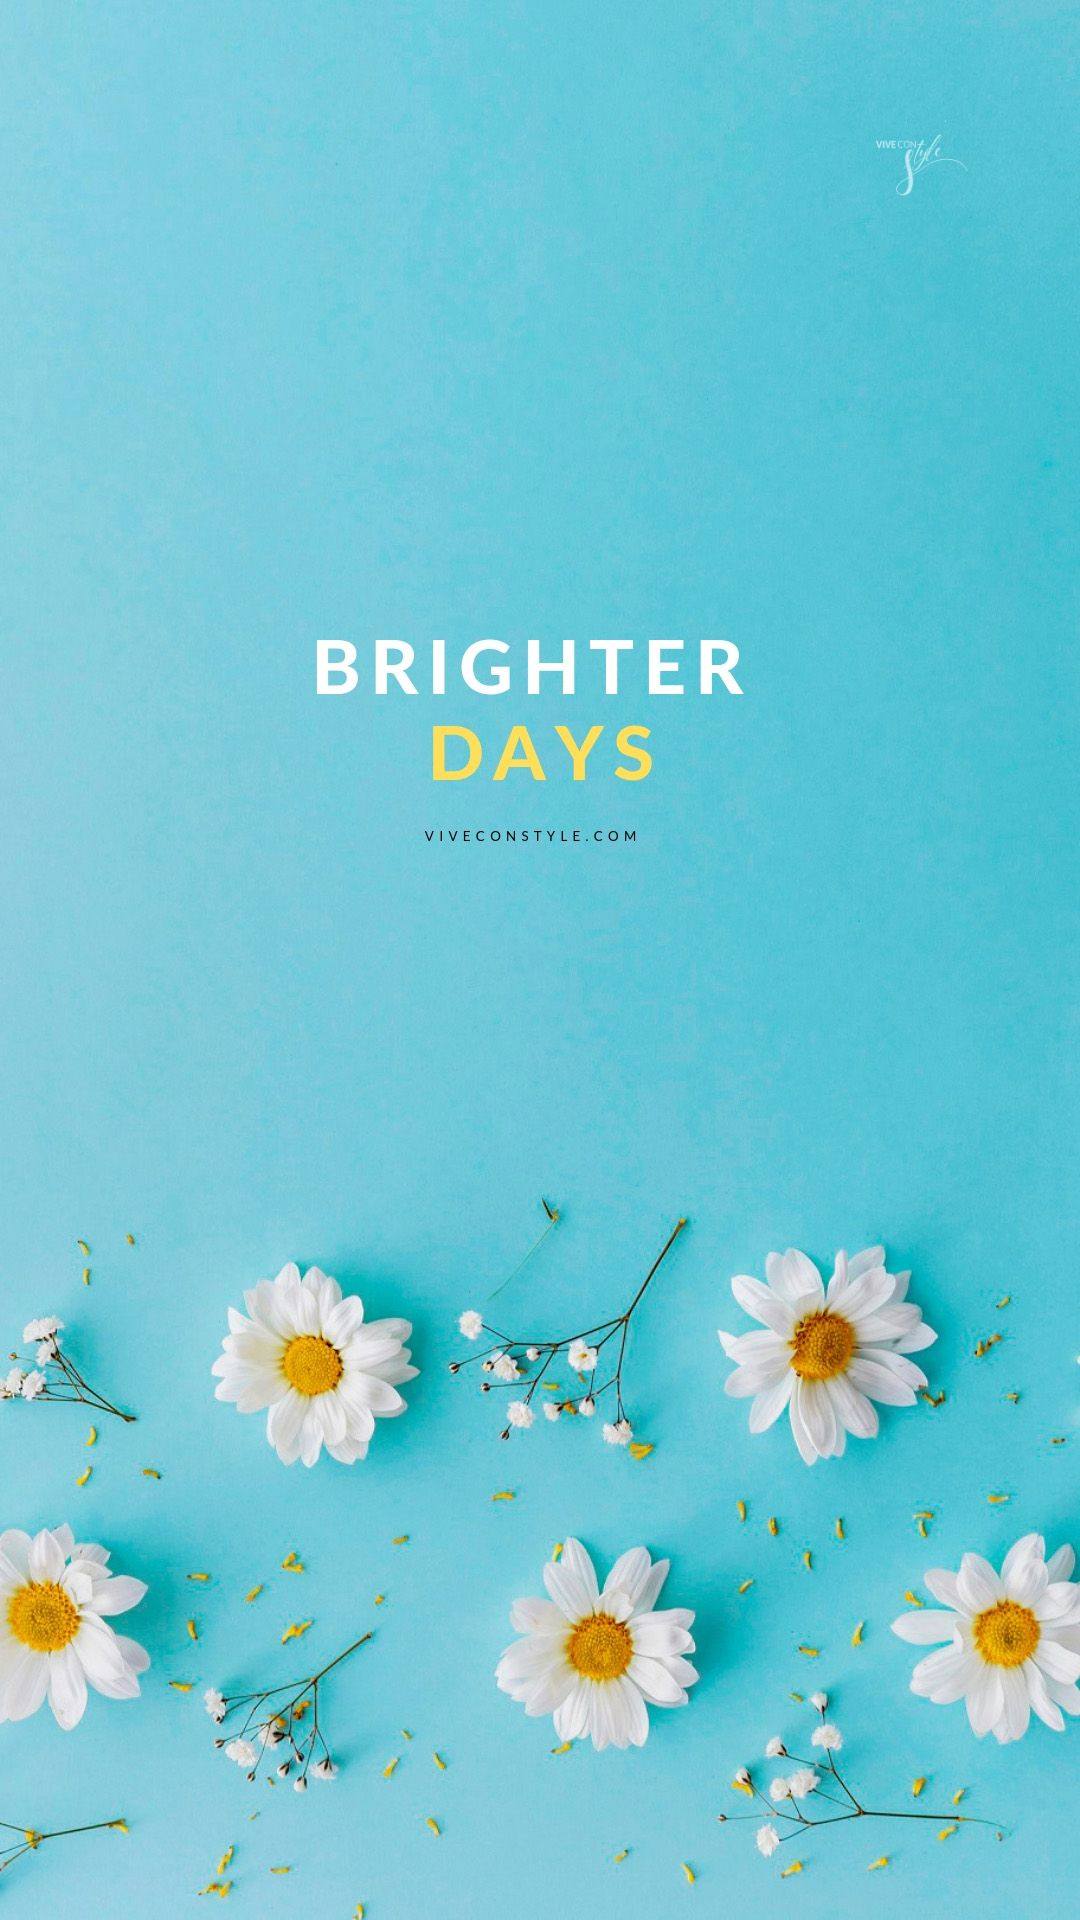 Brighter Days Quote Mobile Wallpaper For Iphone And Android With Inspirational Quotes Bright Day Quotes Wallpaper Quotes Mobile Wallpaper